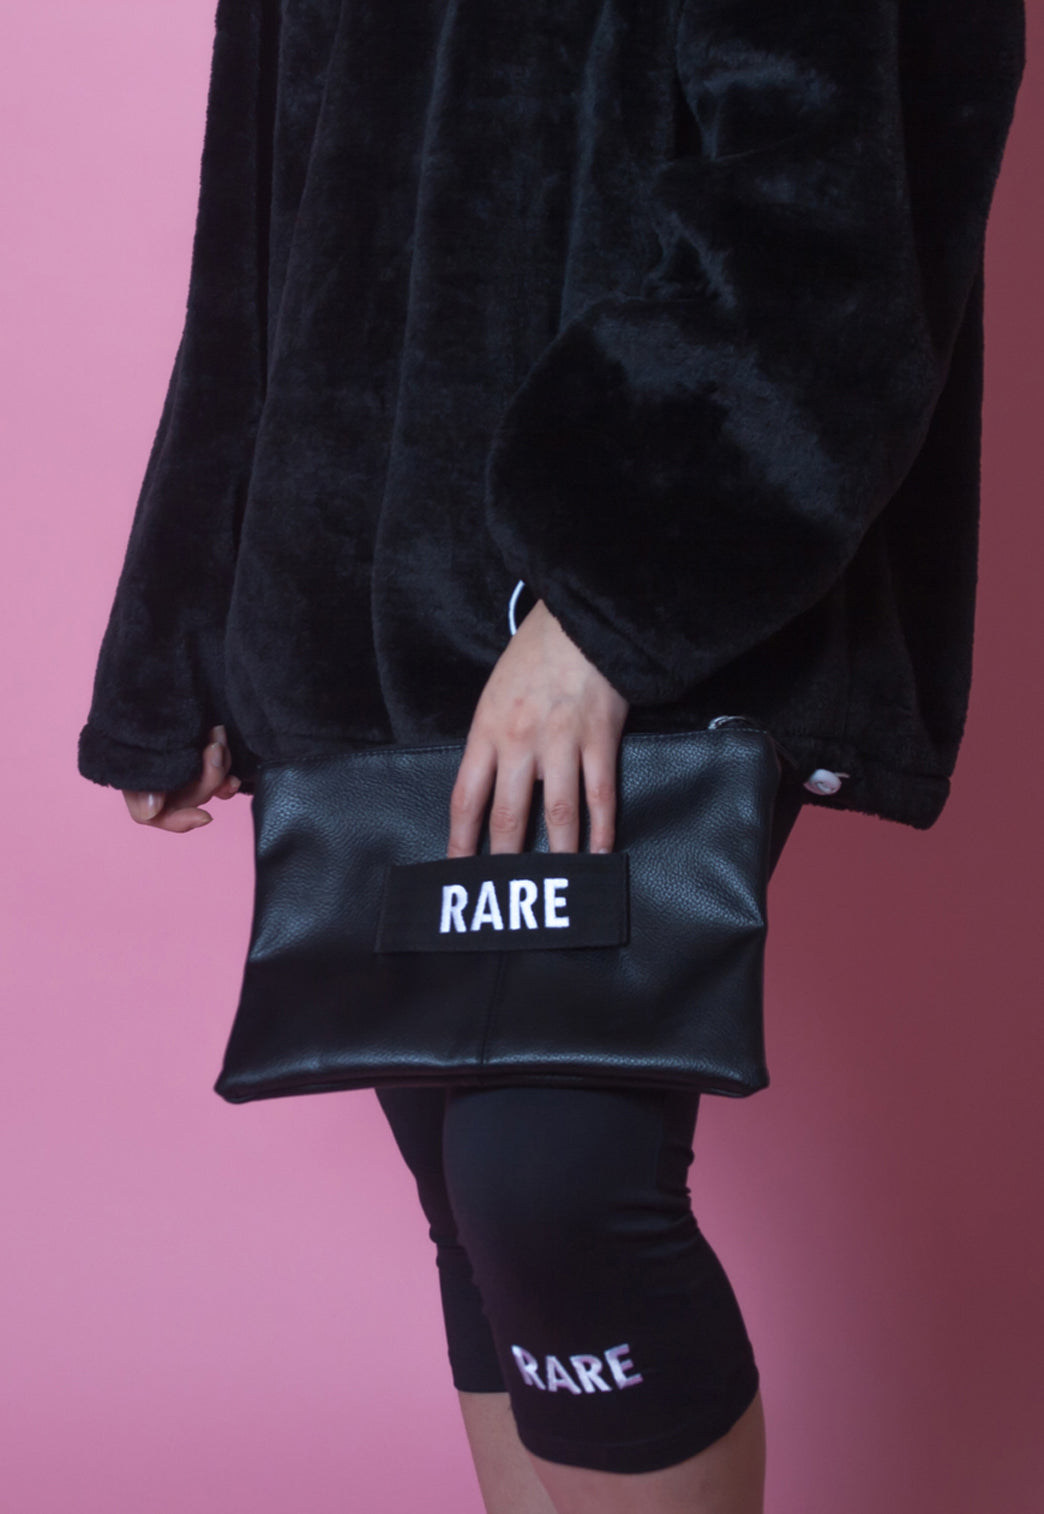 RARE LOGO CLUTCH BAG